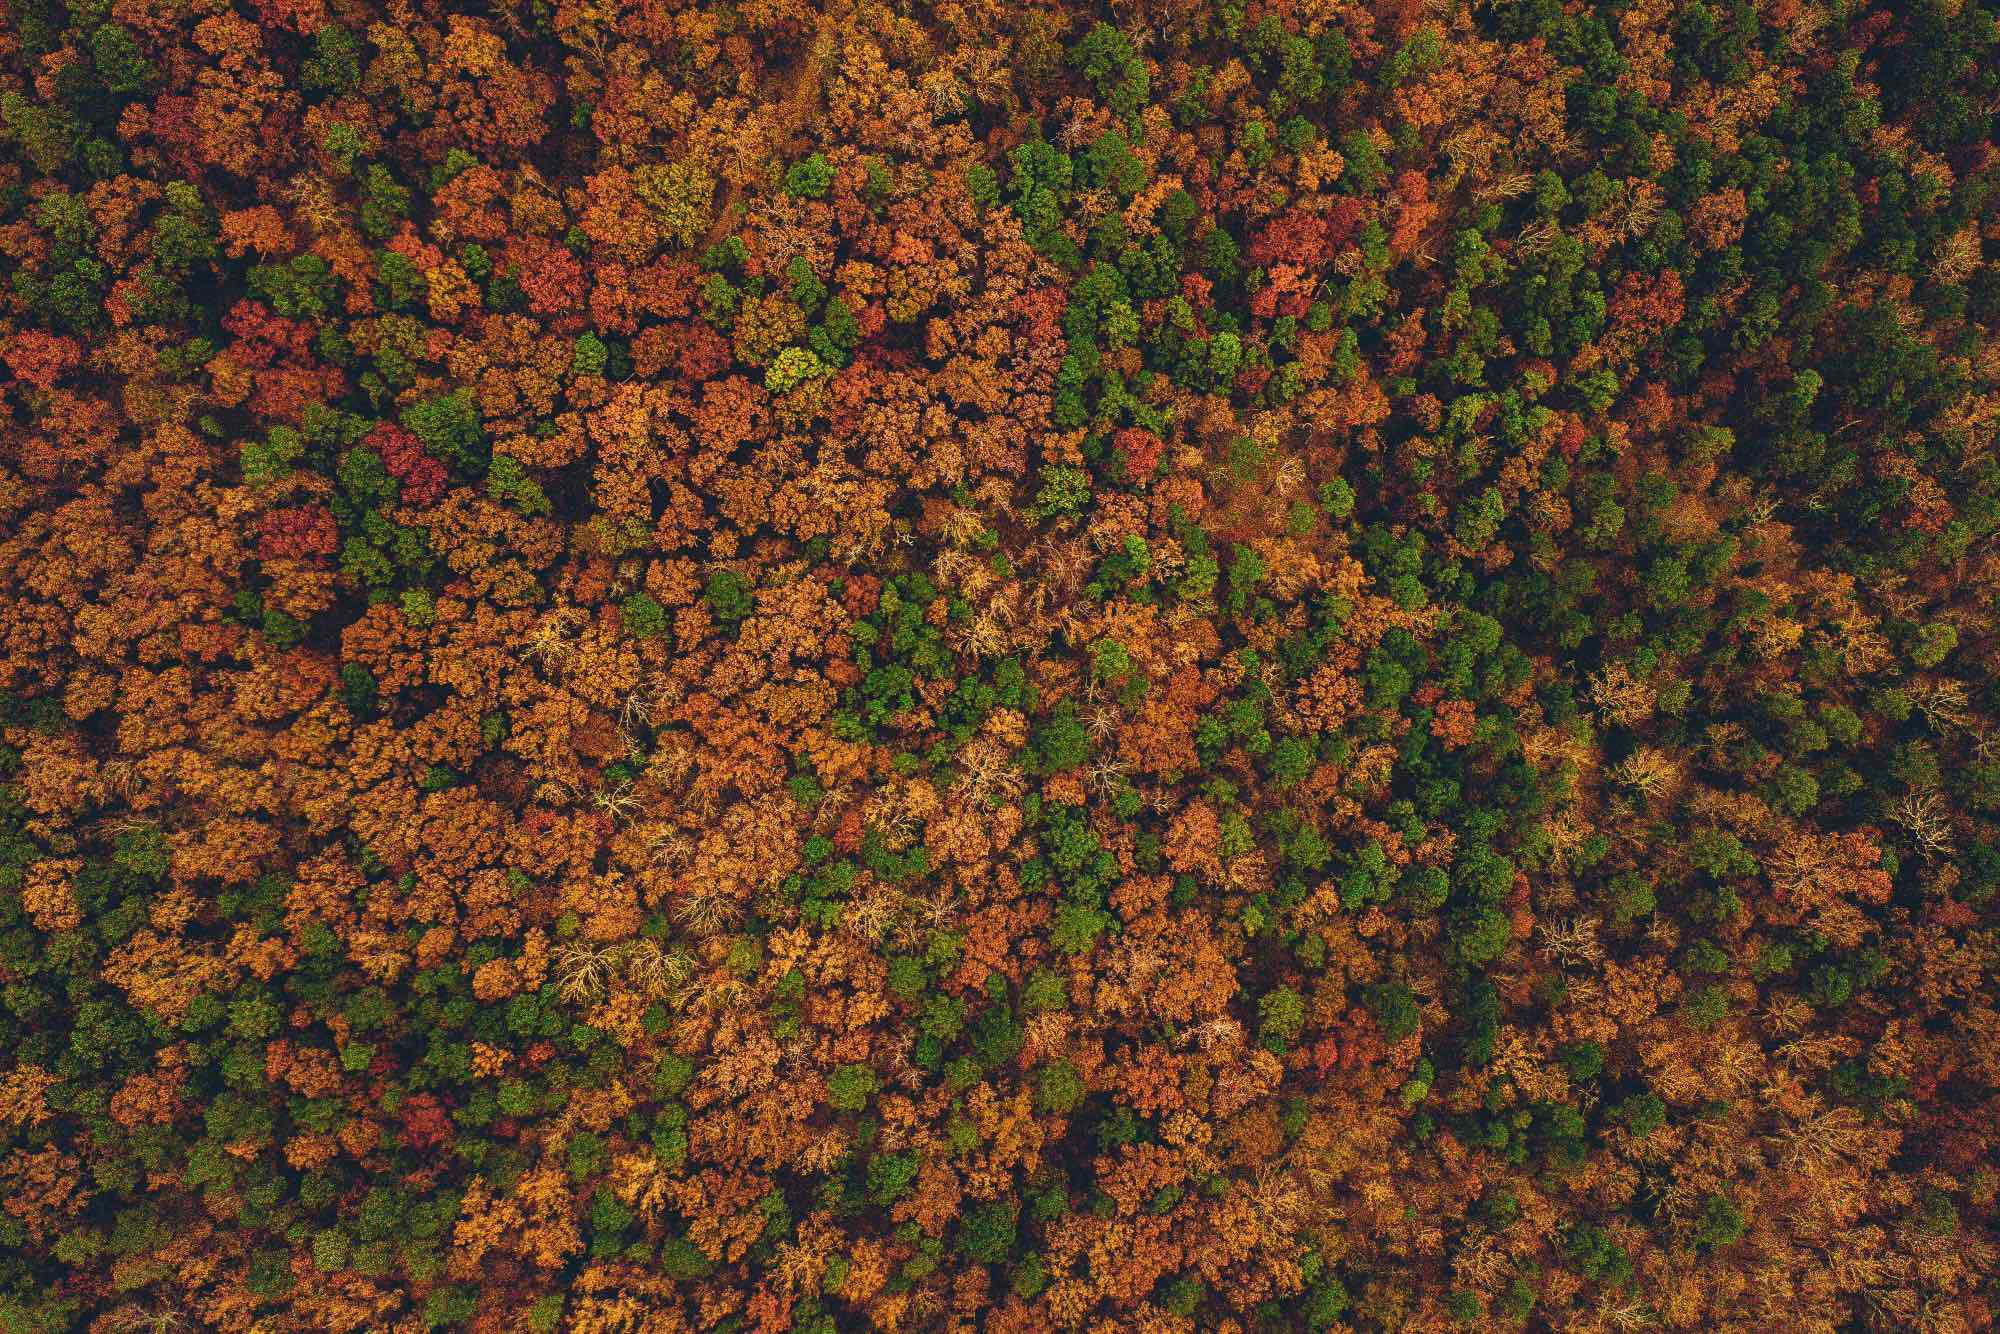 forest in autumn colors taken by drone